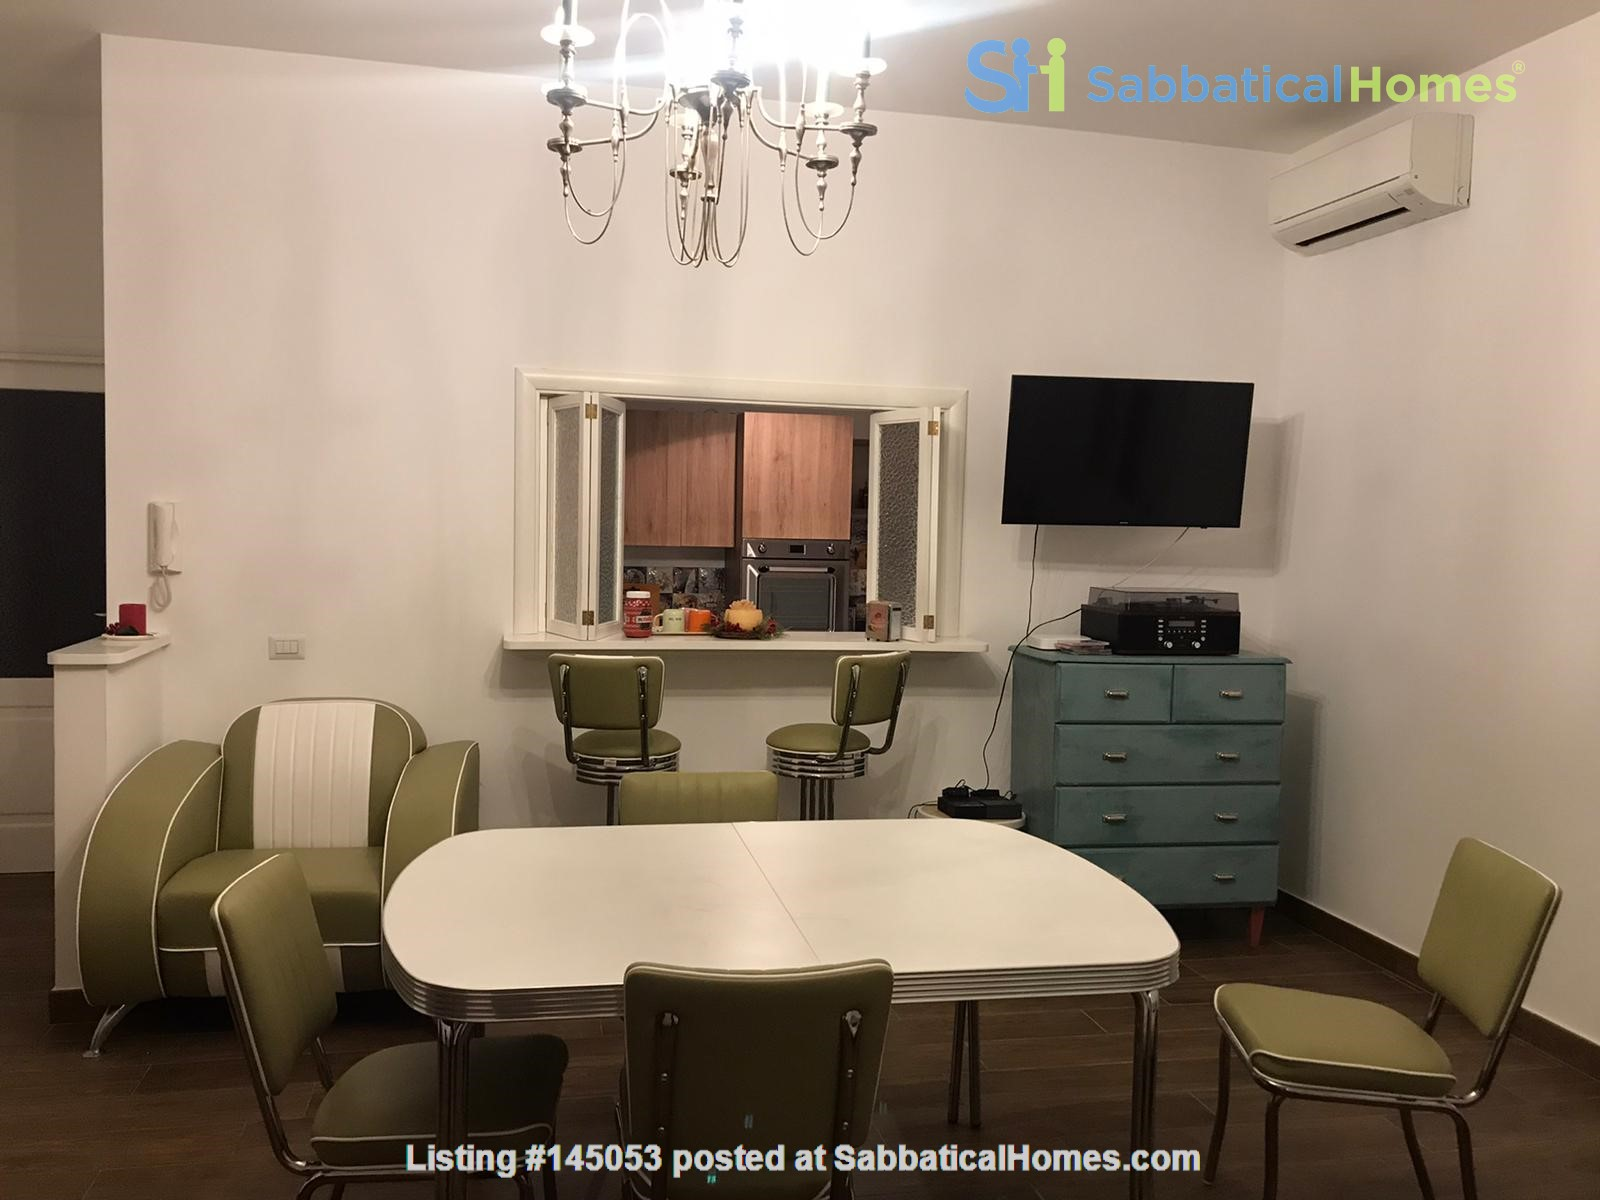 University Sacro Cuore - Brightly apartment with large terrace. Home Rental in Roma, Lazio, Italy 1